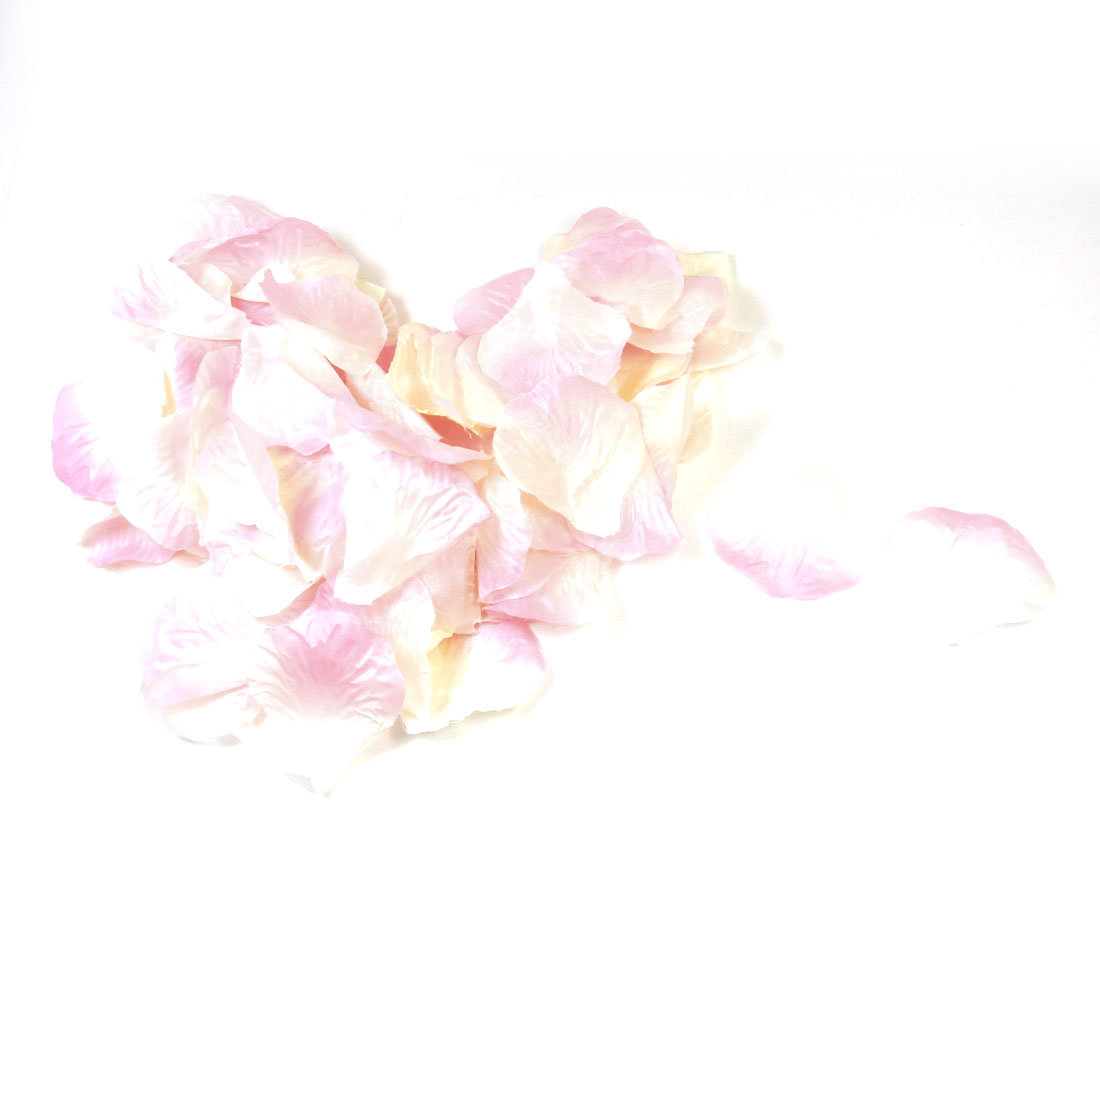 100 Pcs Wedding Party Detail Emulational Fabric Rose Petals Off White Pink